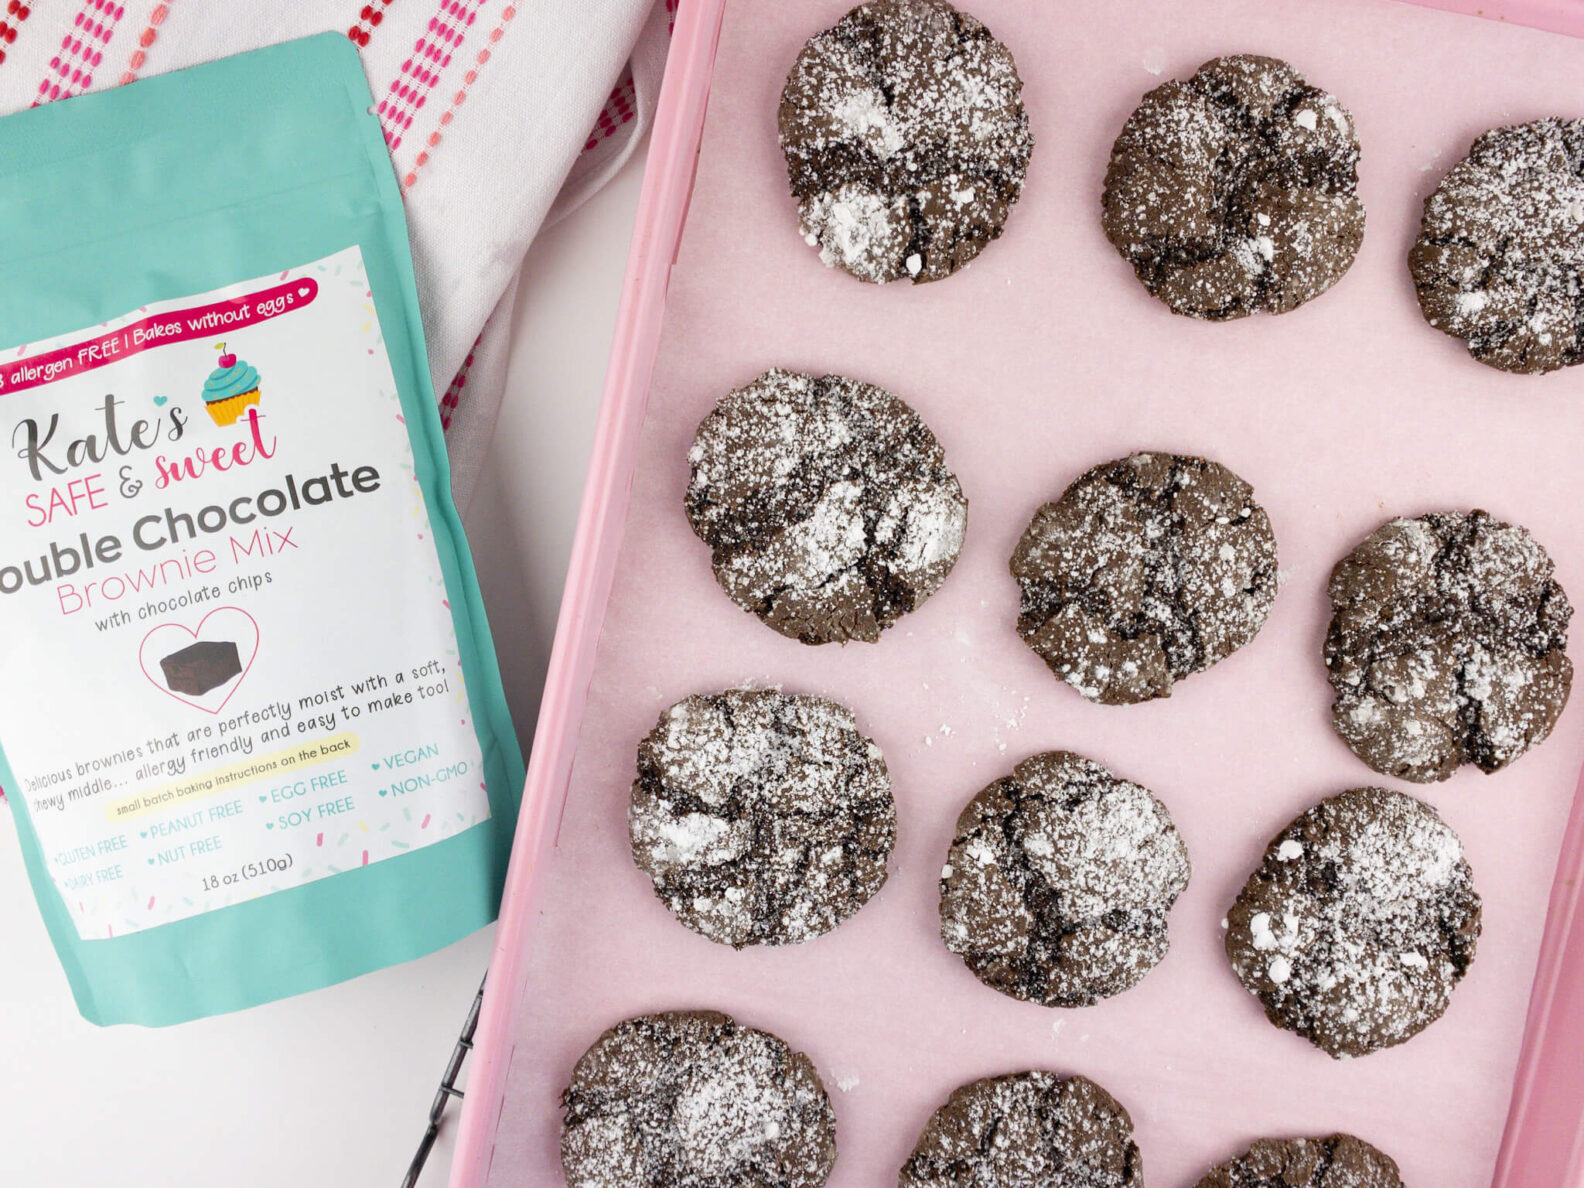 Kate's Safe and Sweet - Crinkle Brownie Cookies Tray and Mix